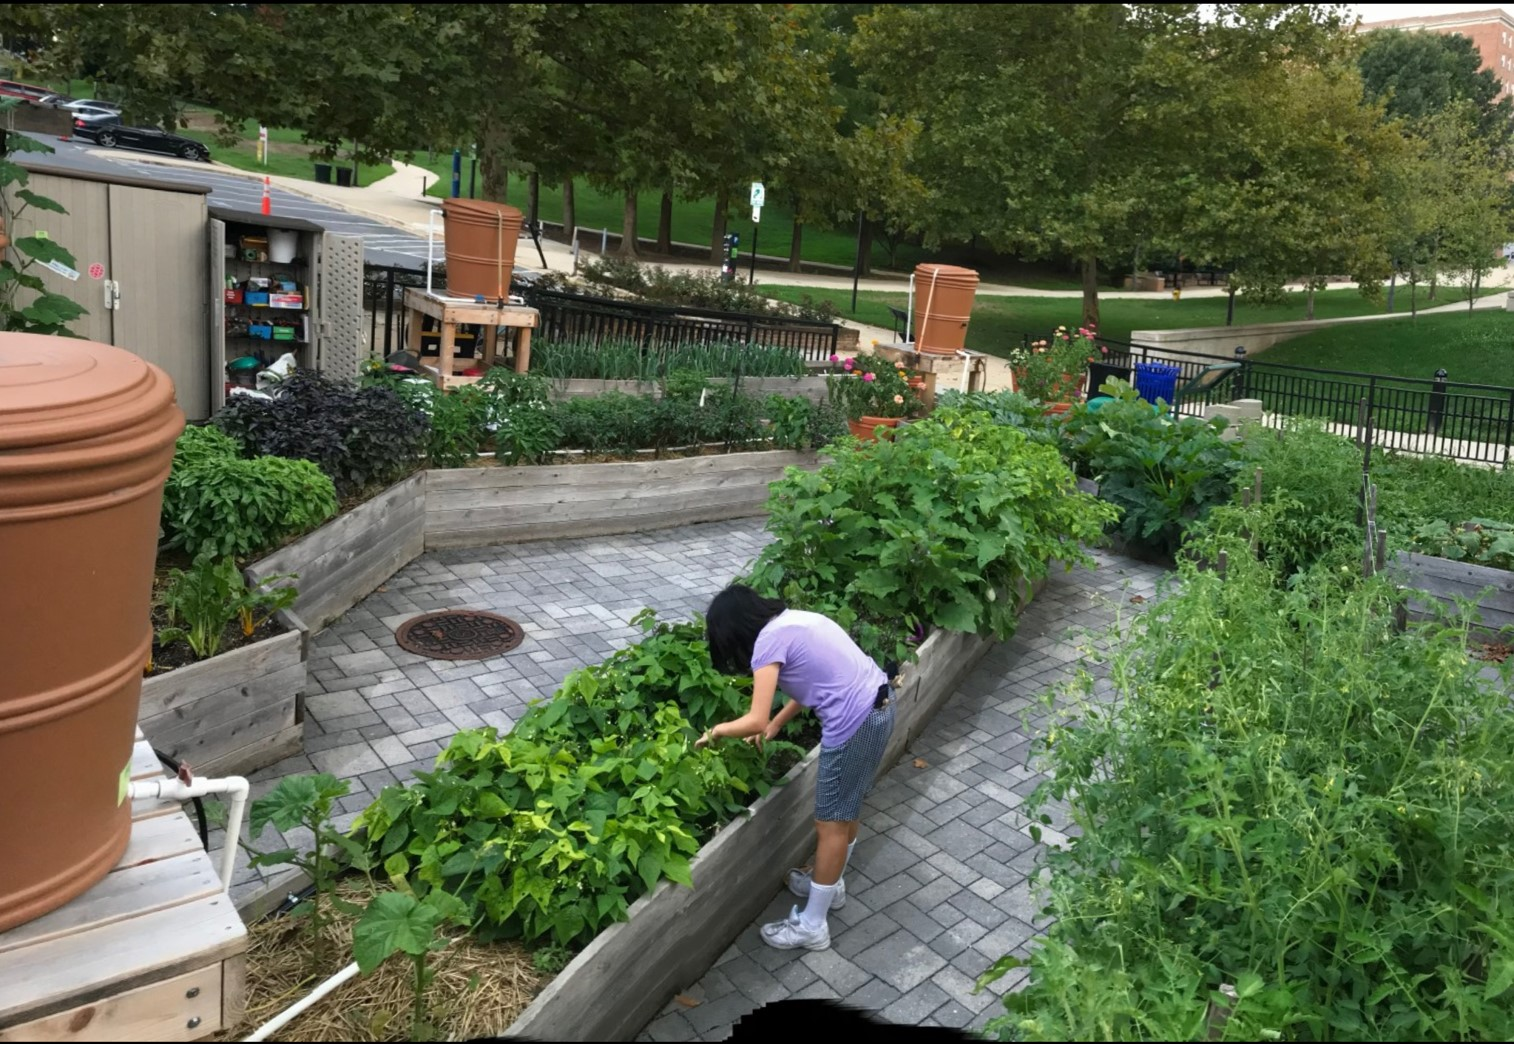 University of Maryland Community Learning Garden in College Park, MD